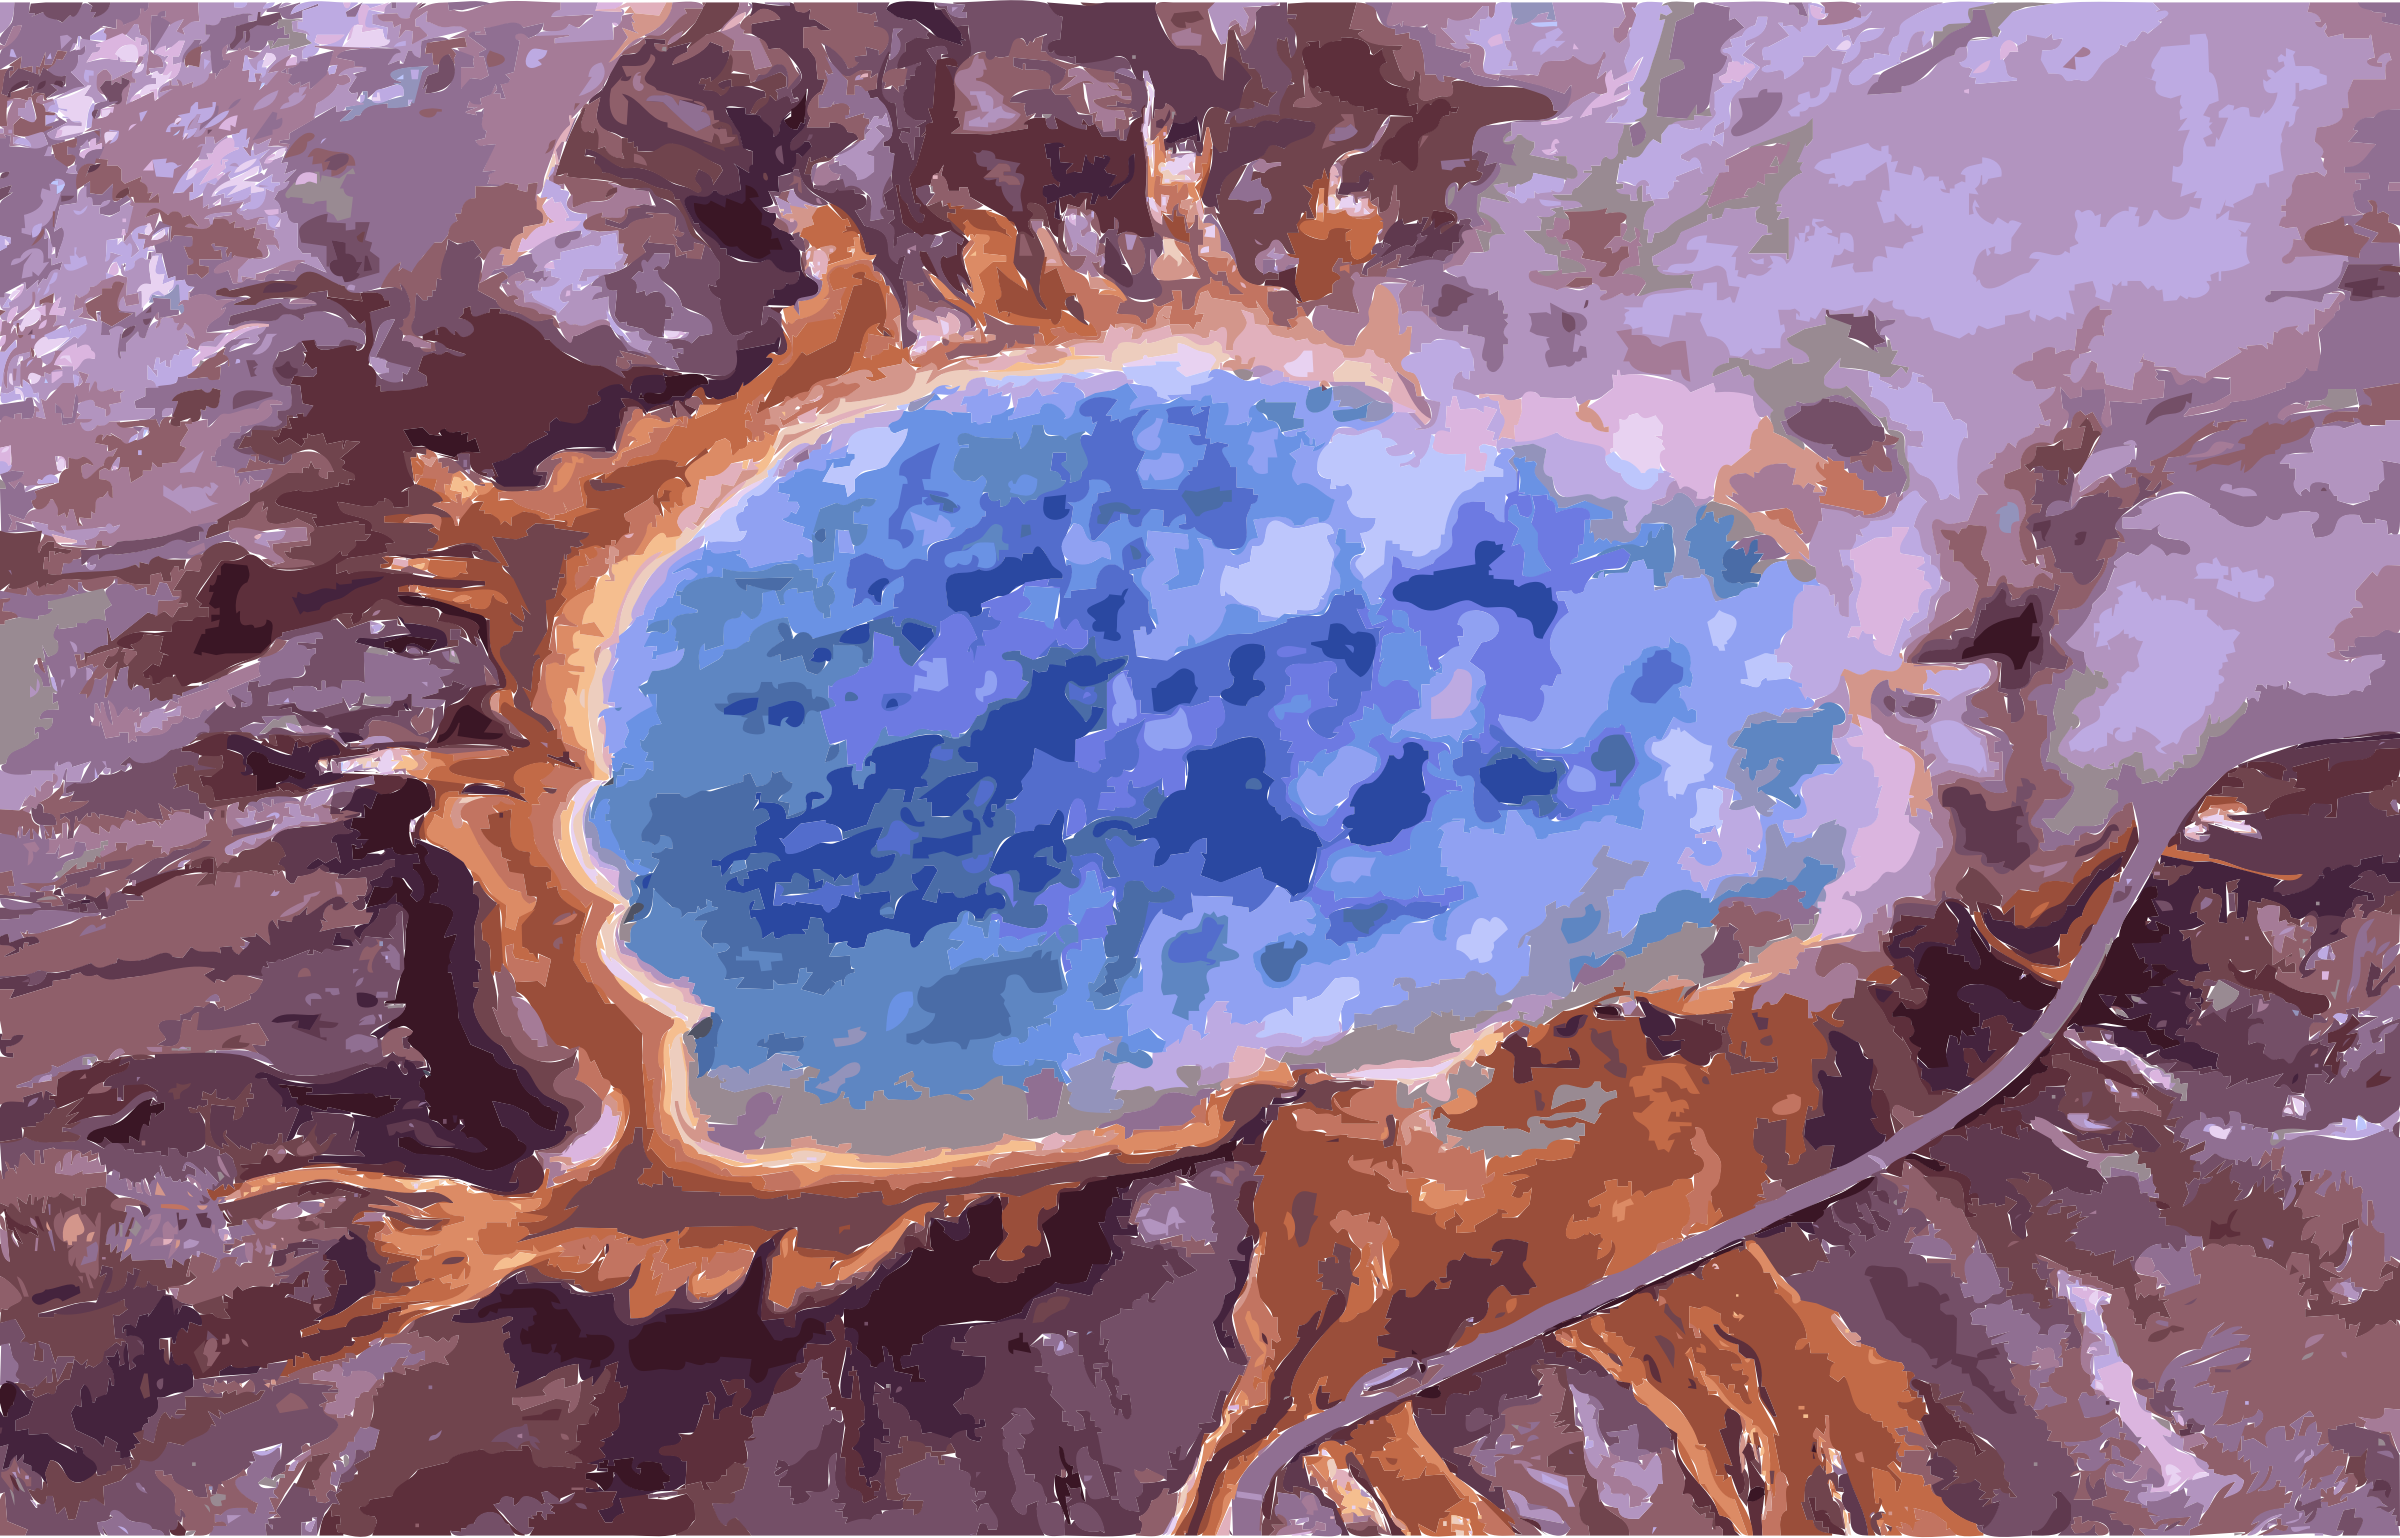 Grand prismatic spring by 3we2nn+8w9uc0fun68aw